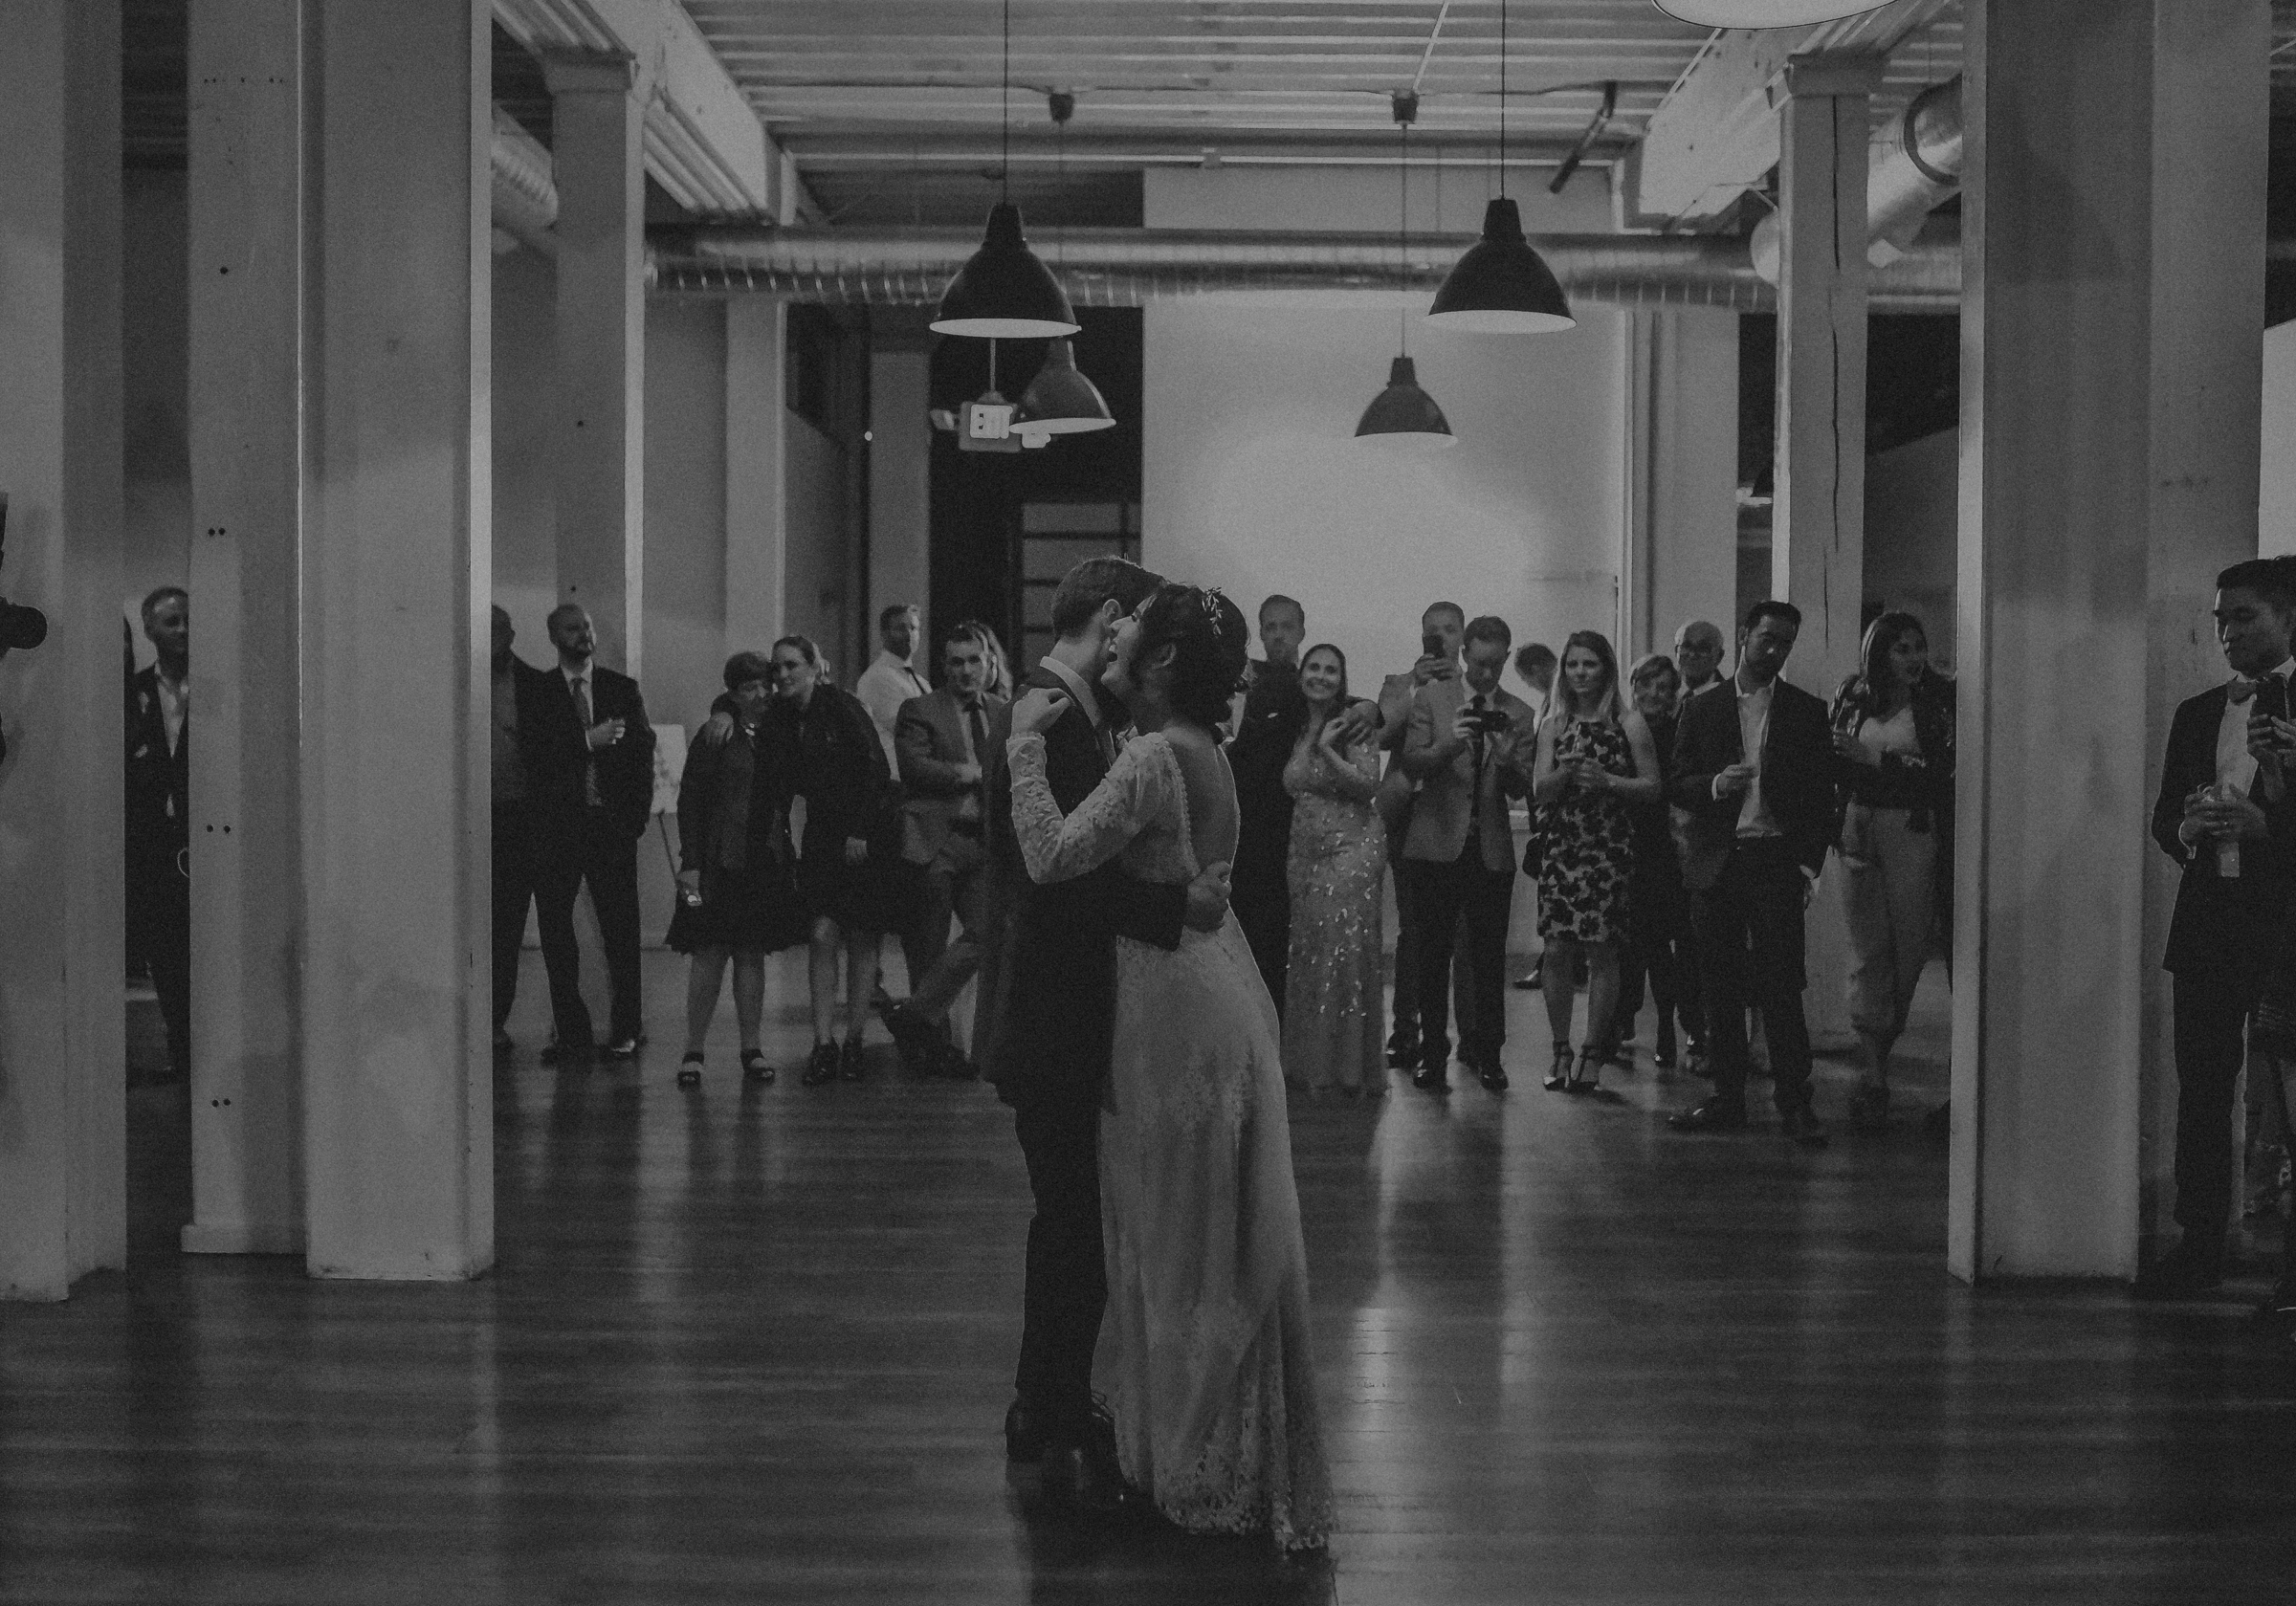 Isaiah + Taylor Photography - The Unique Space Wedding, Los Angeles Wedding Photography 158.jpg